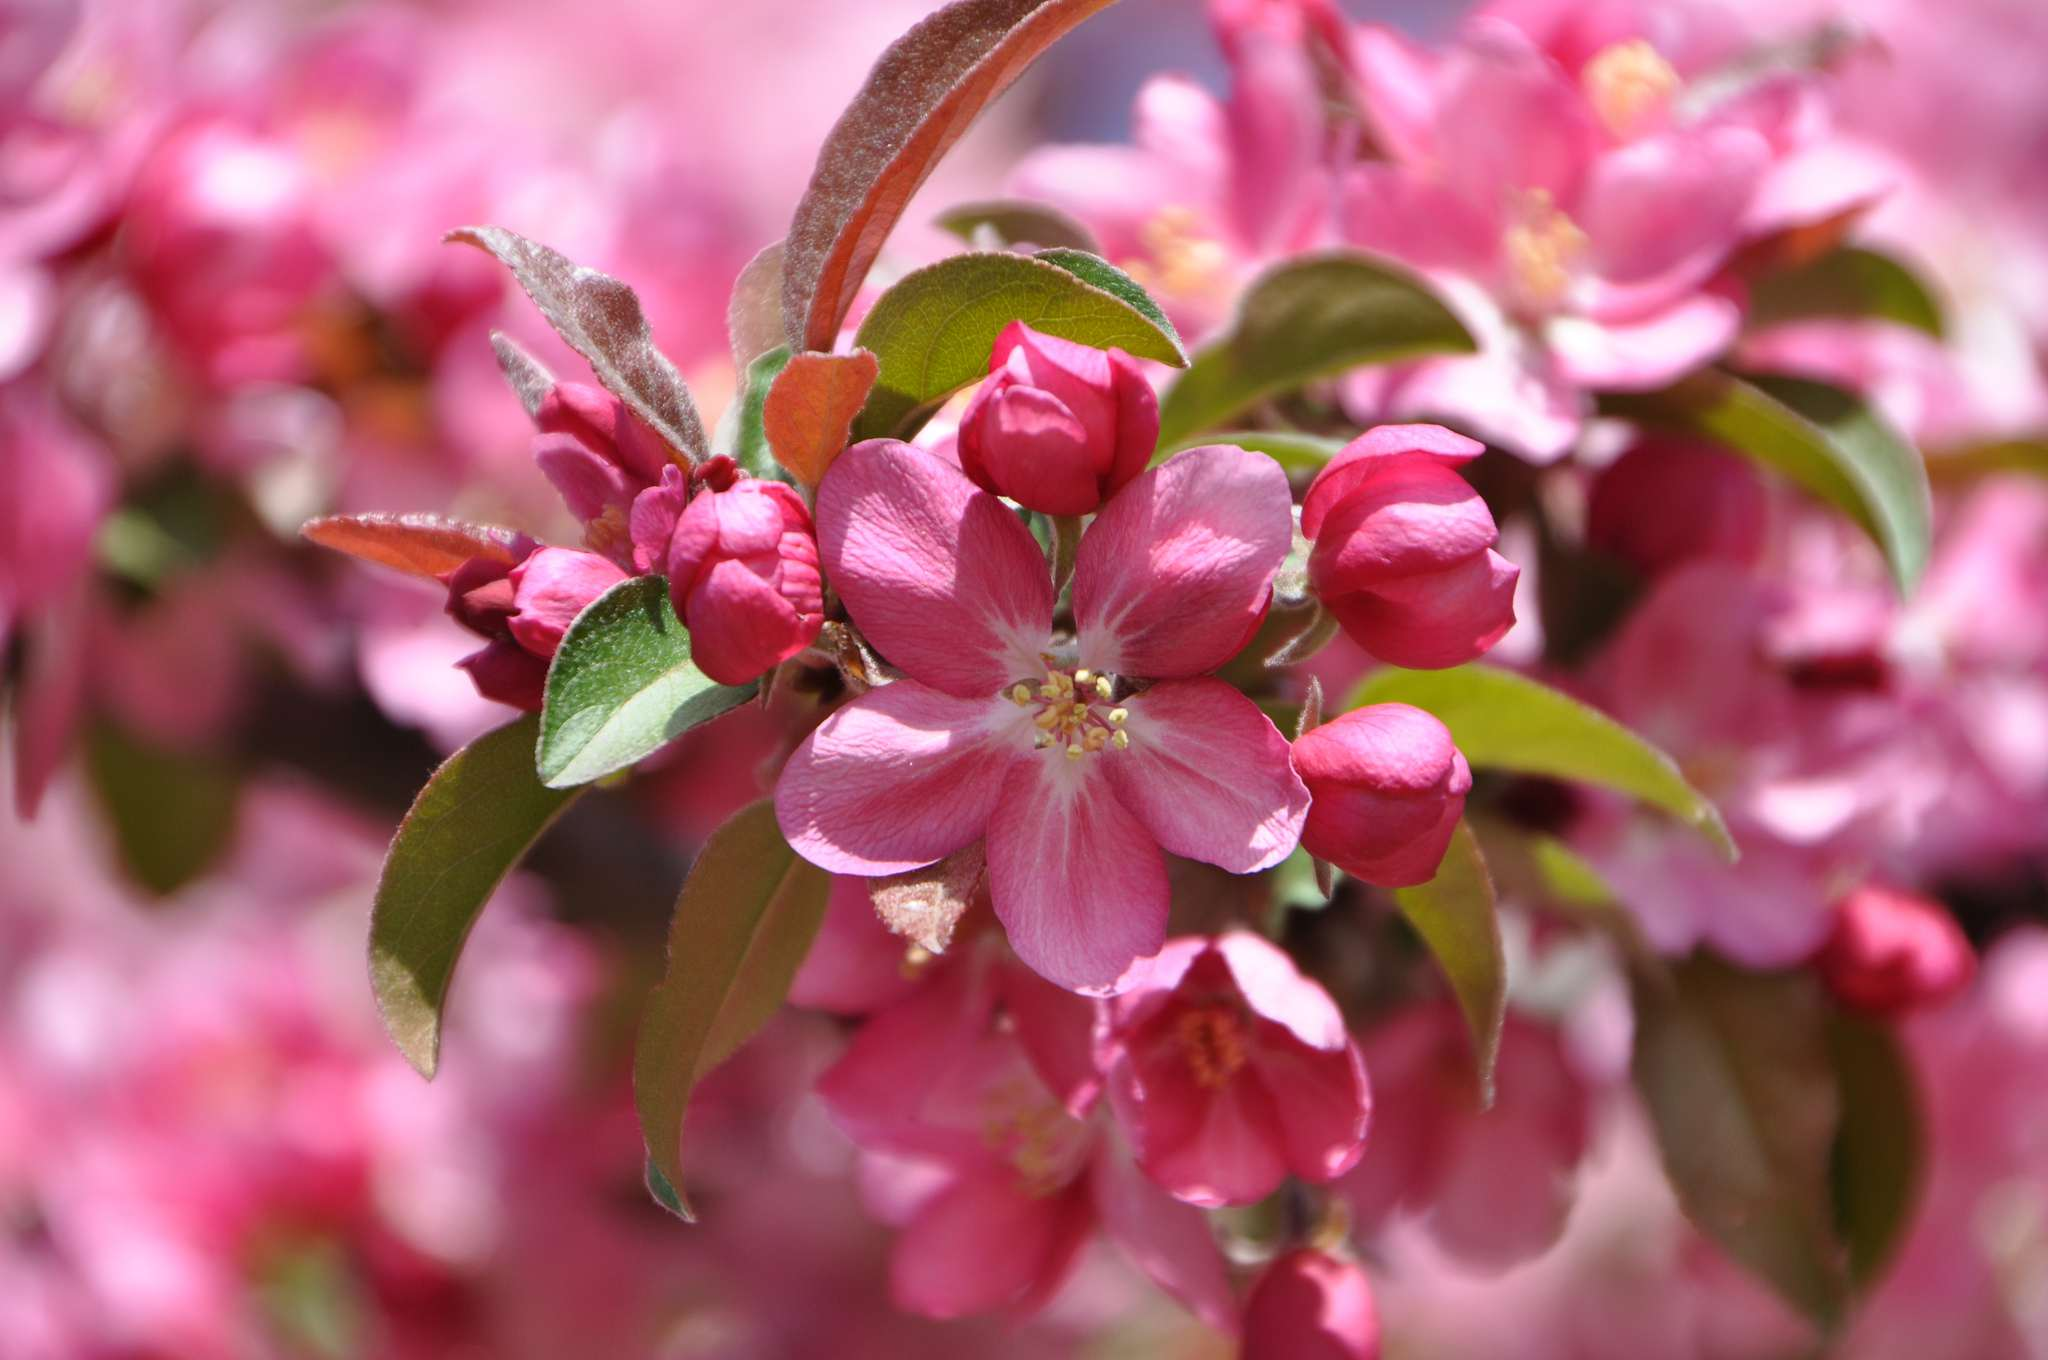 Pink crabapple blossoms in bloom